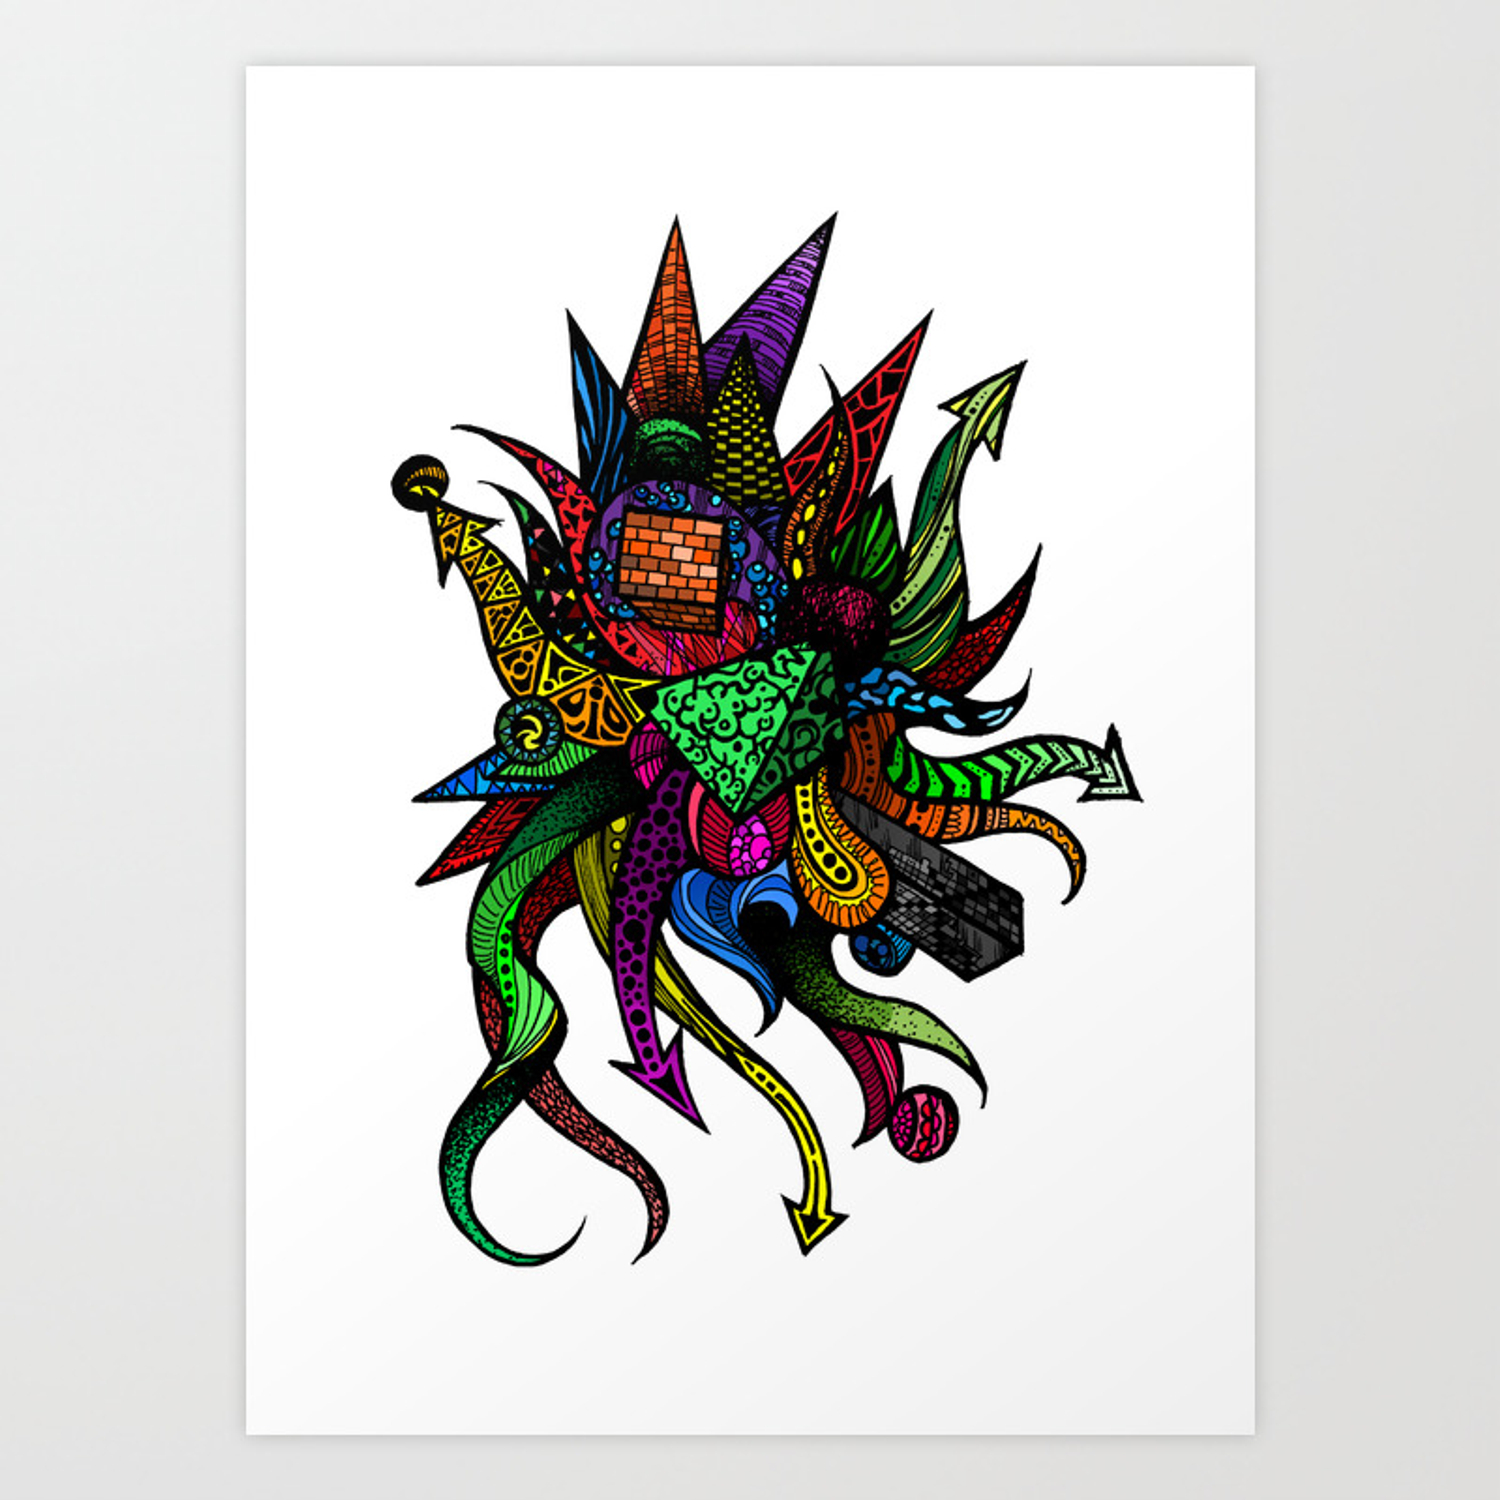 Colorful Abstract Drawing With Arrows Shapes Art Print